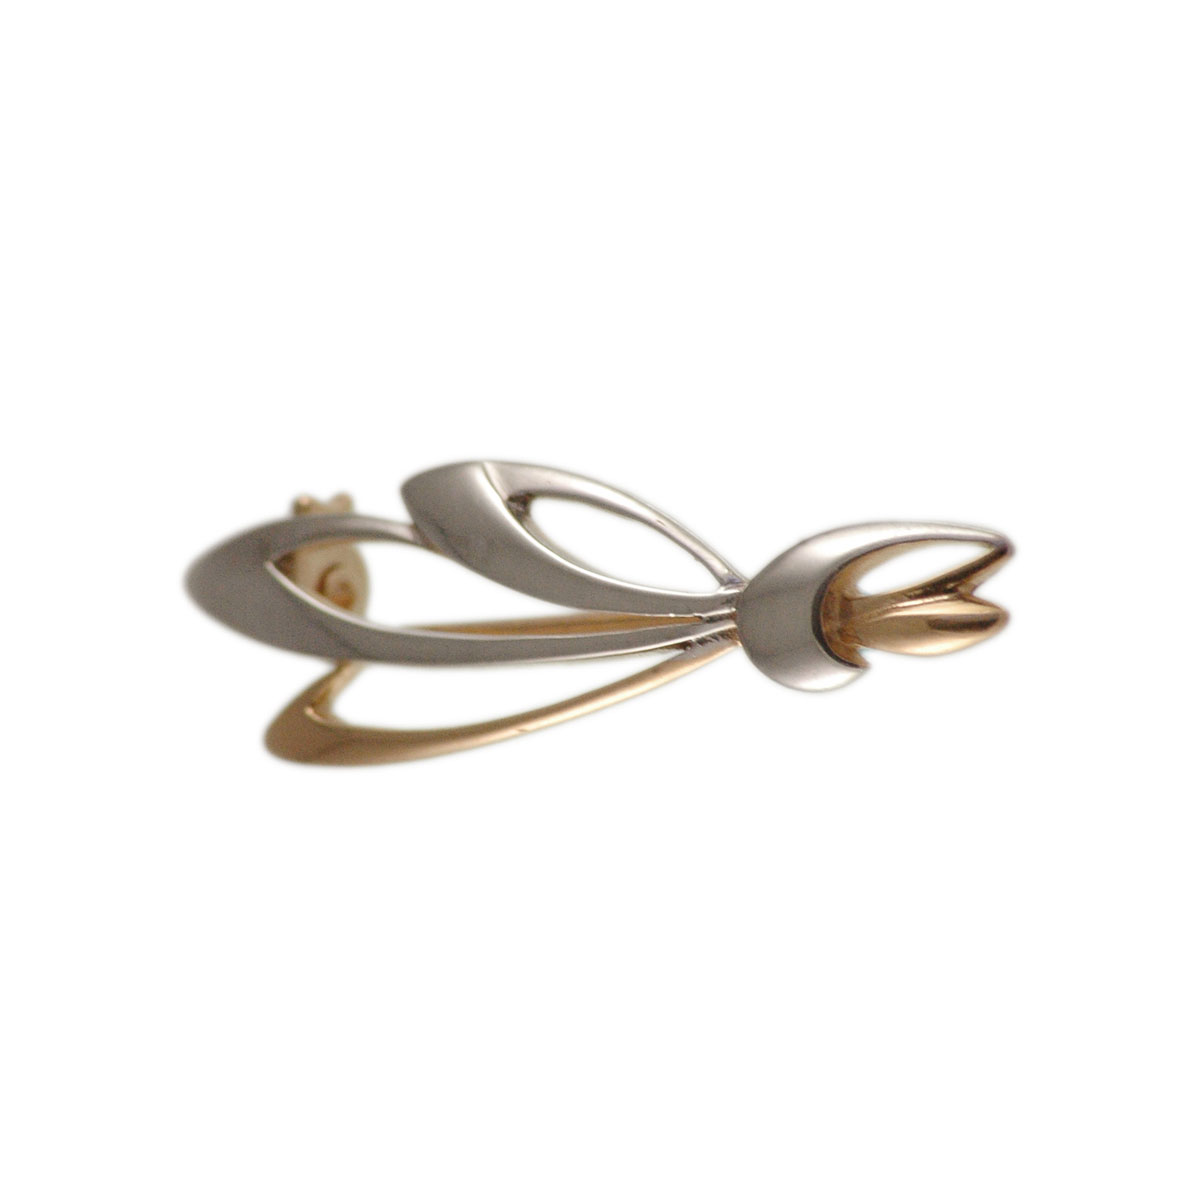 Rose and white gold brooch 1